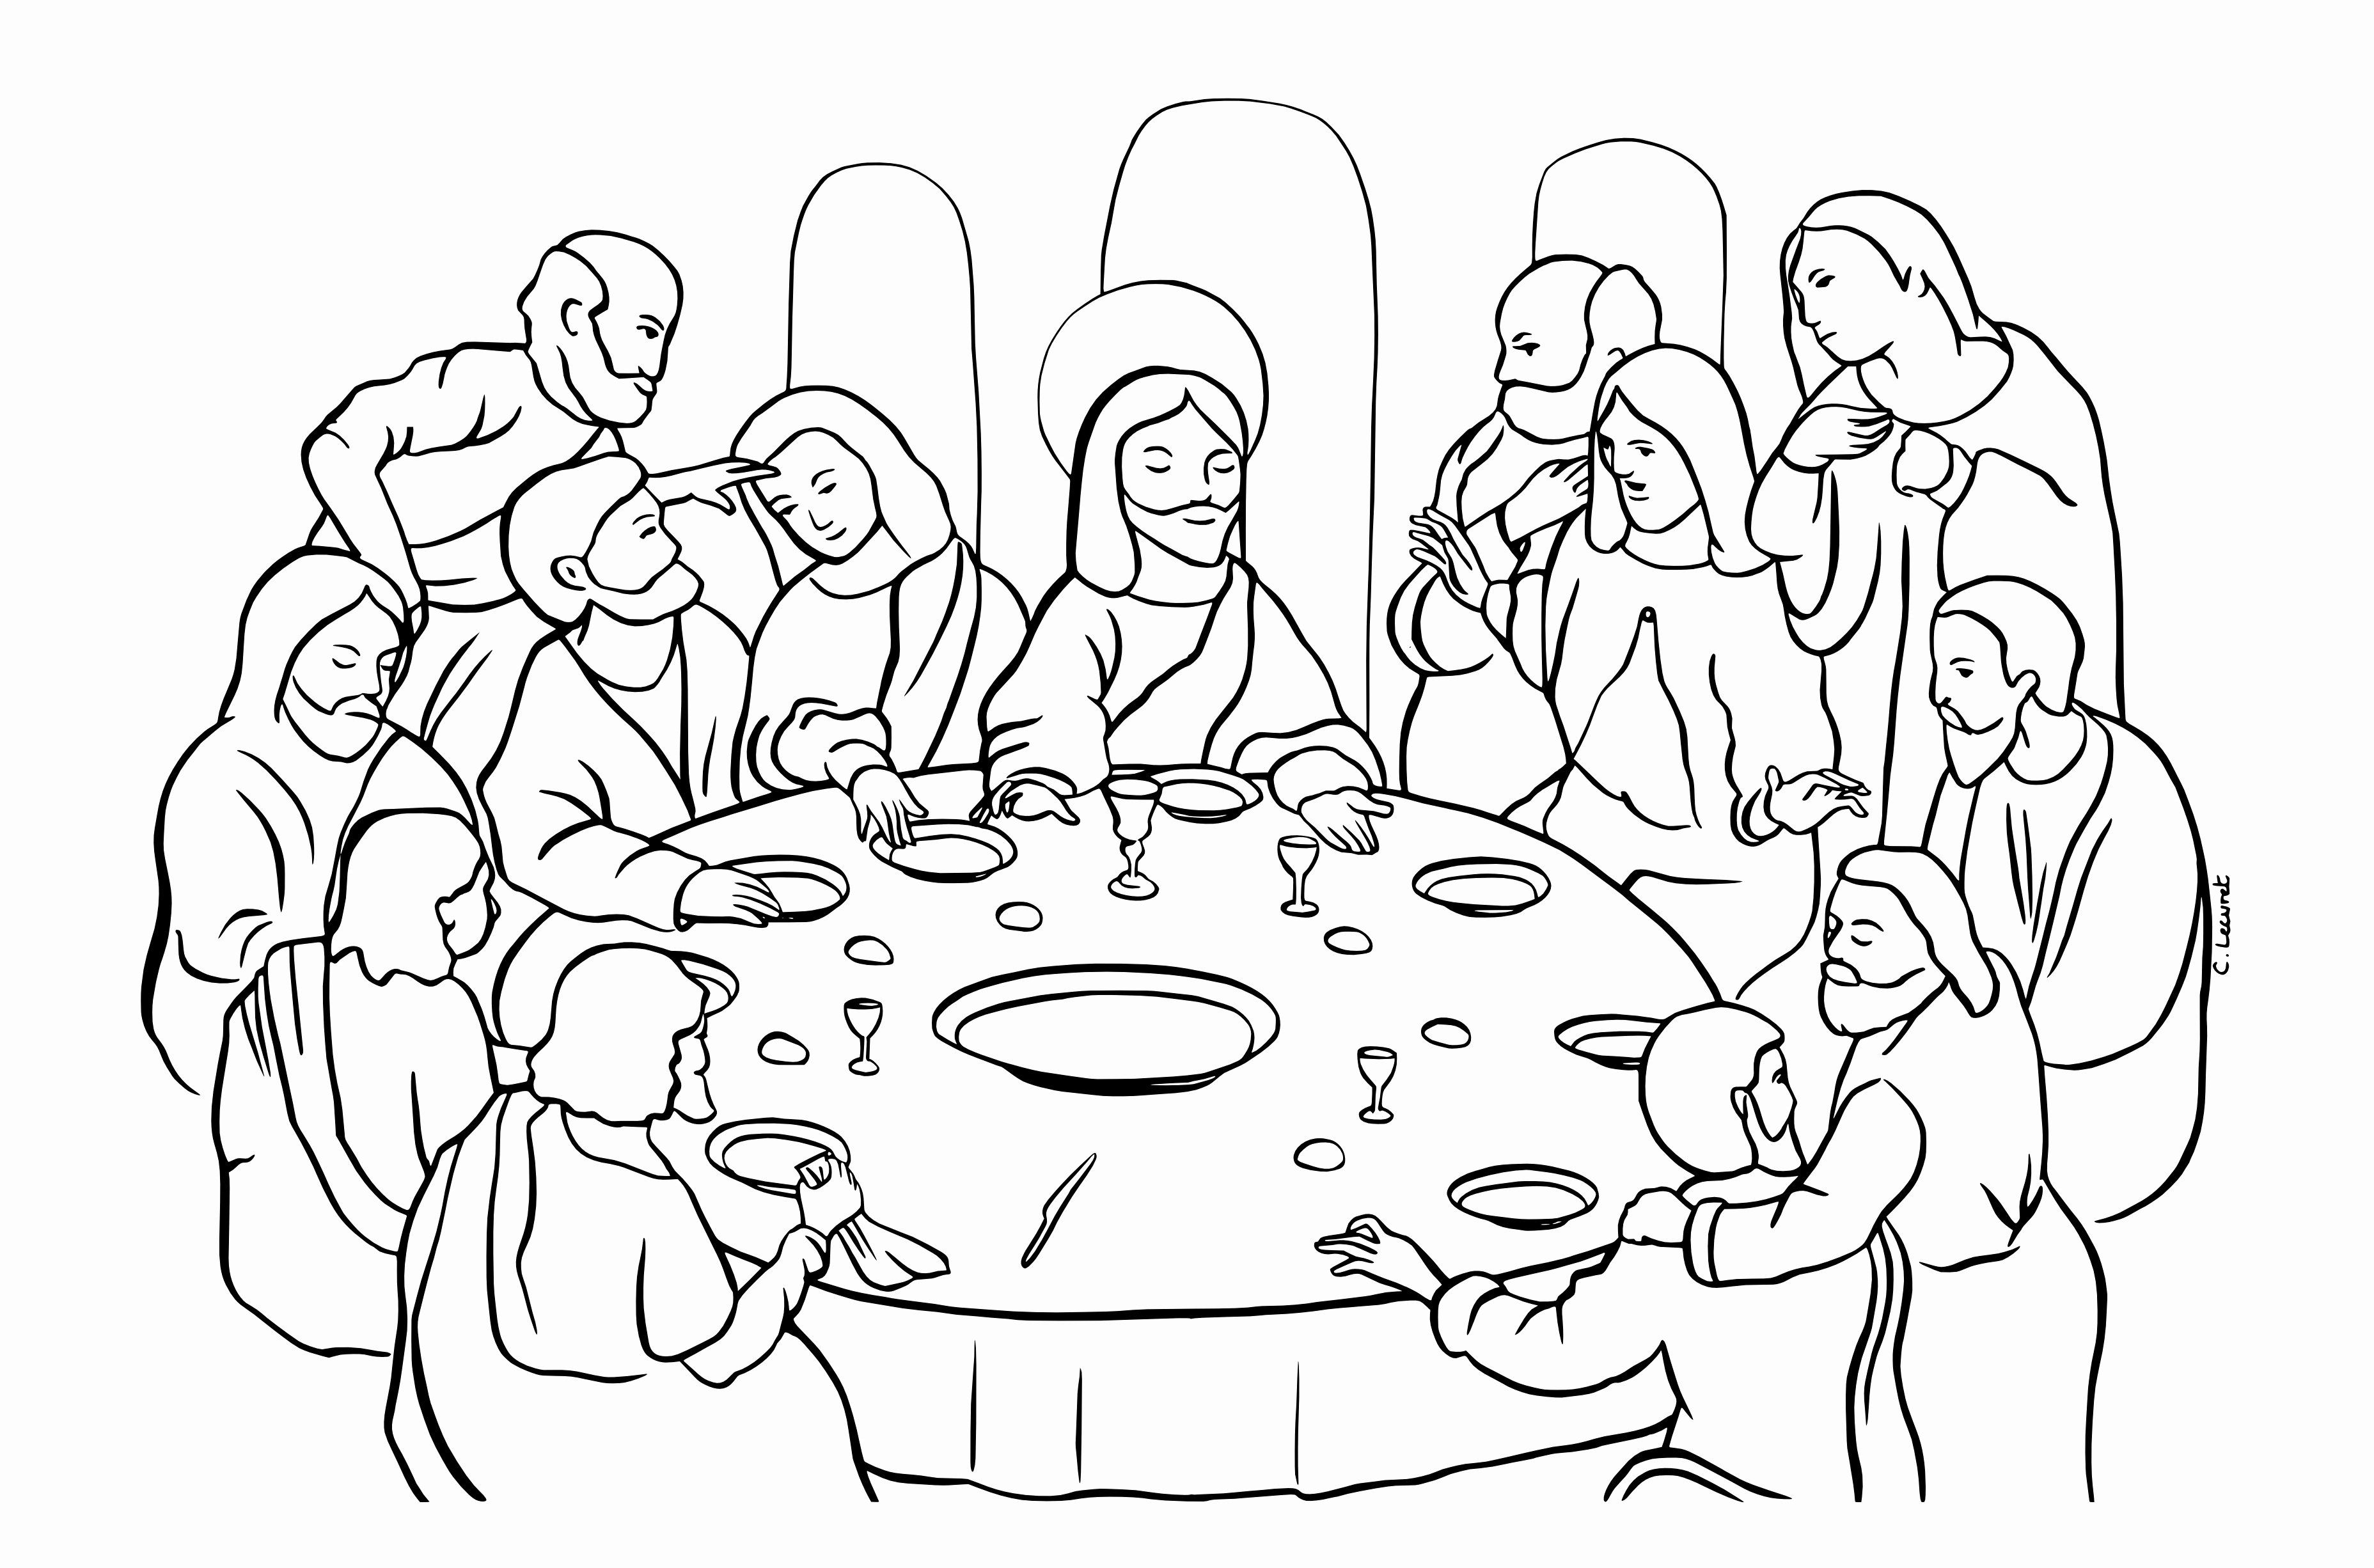 Last Supper Coloring Page Beautiful 44 Last Supper Coloring Page Last Supper Coloring Page Coloring Home Radiokotha